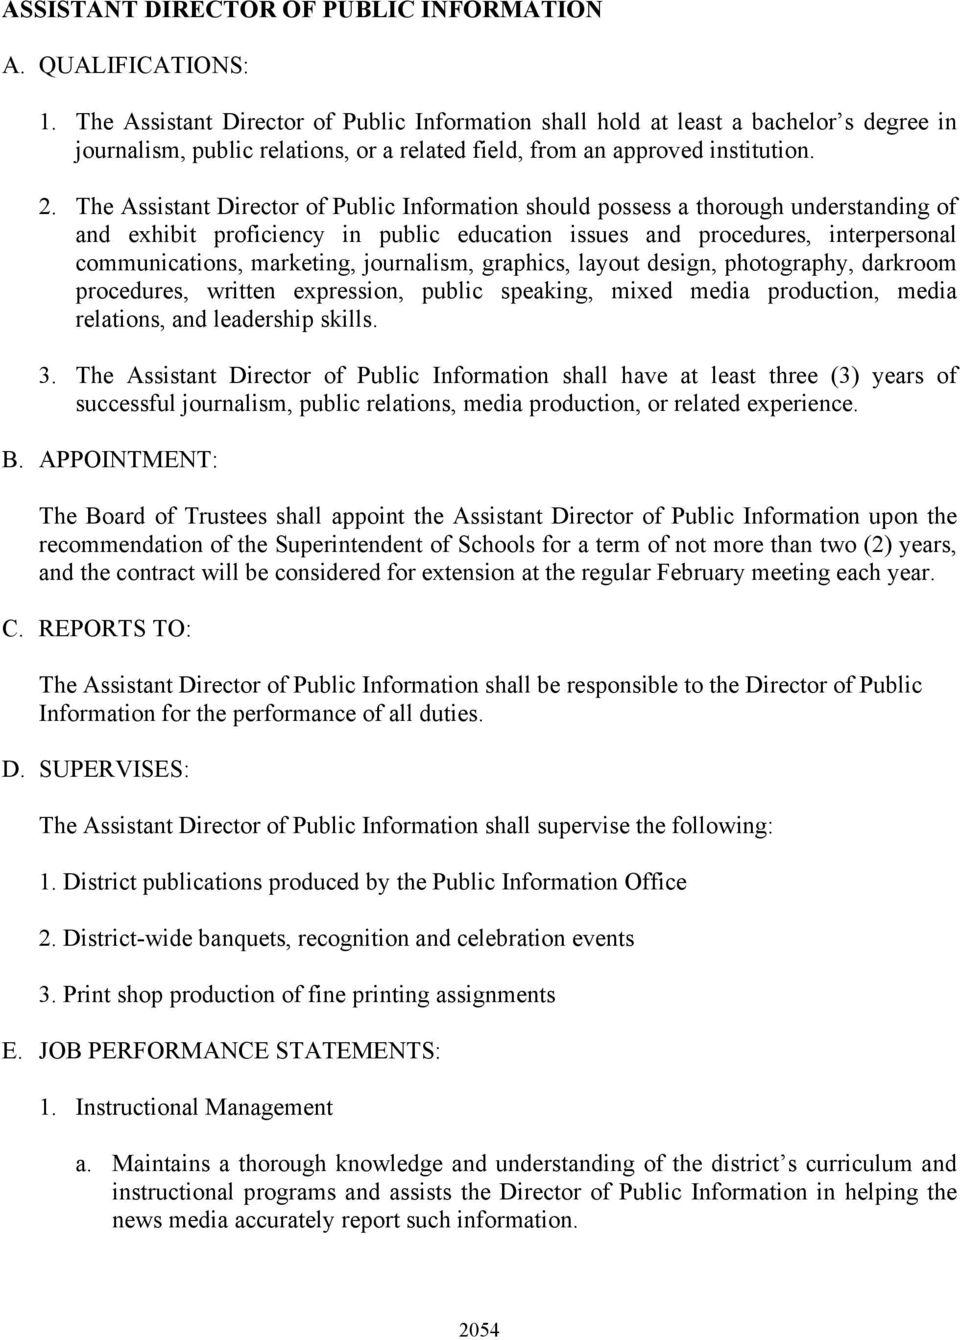 The Assistant Director of Public Information should possess a thorough understanding of and exhibit proficiency in public education issues and procedures, interpersonal communications, marketing,